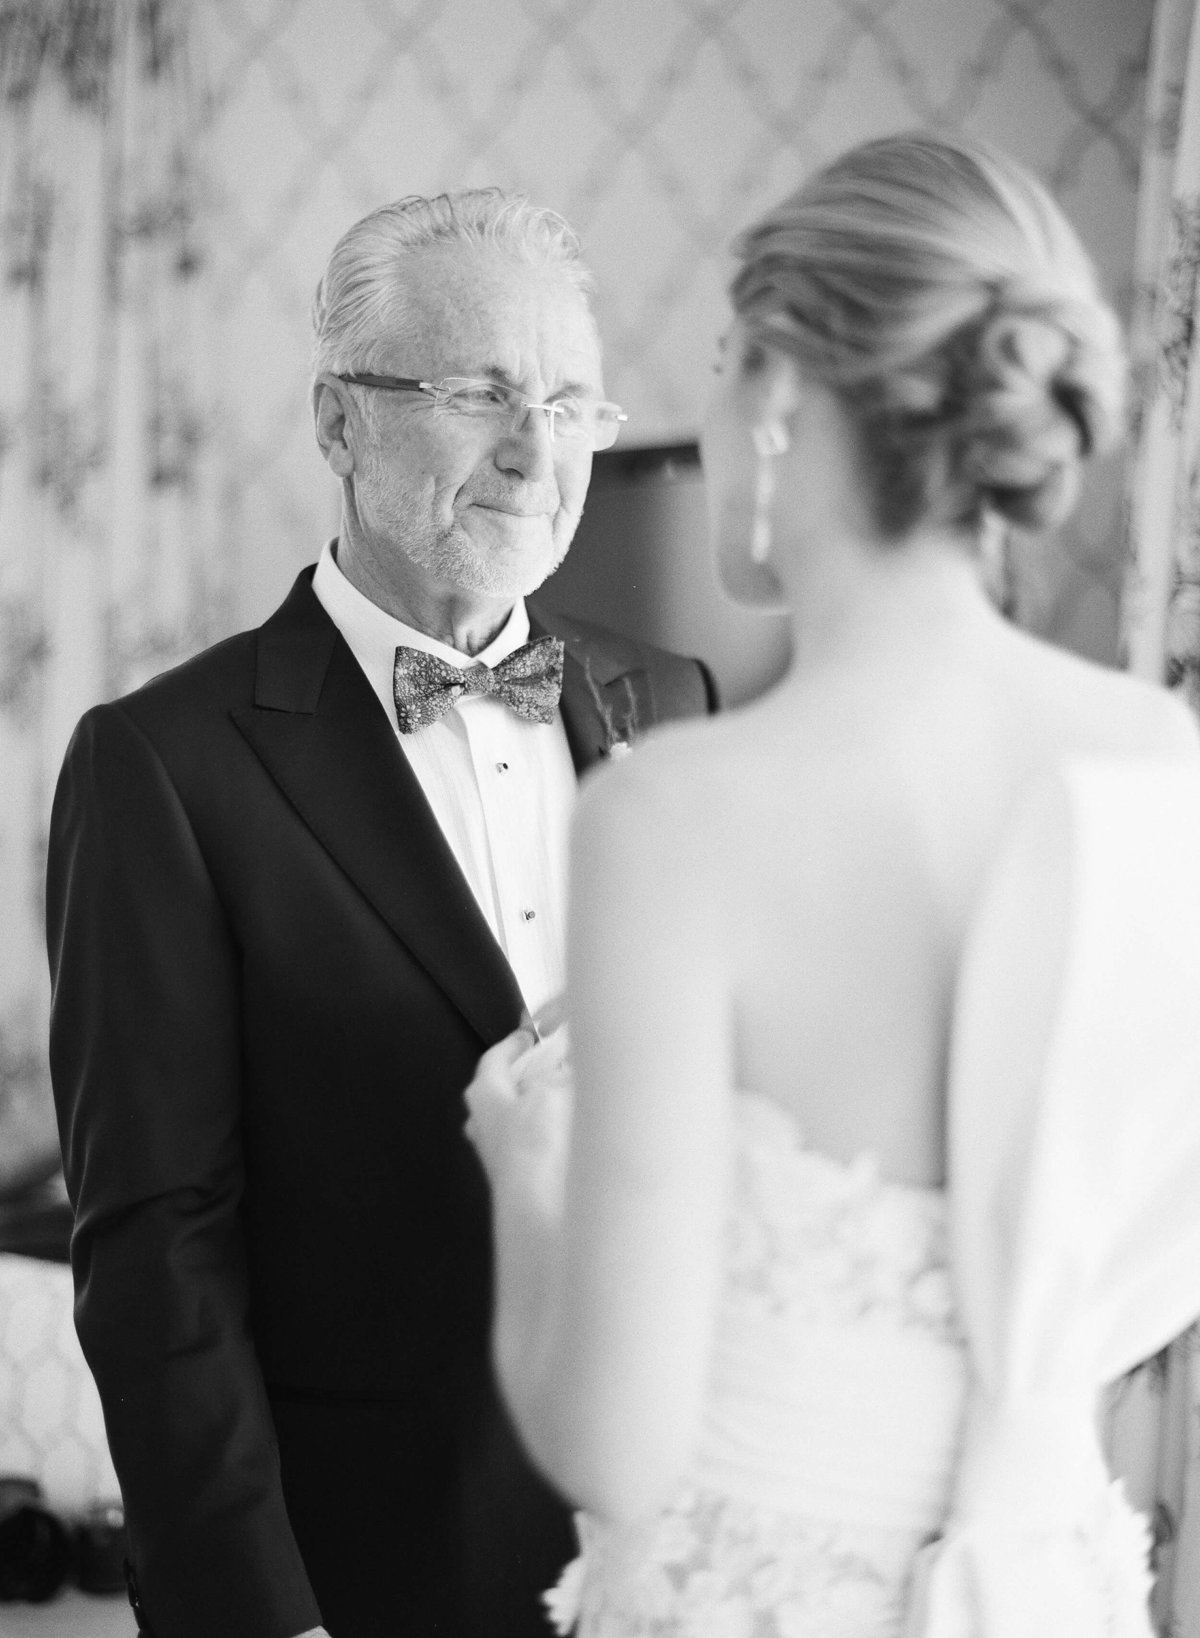 11-KTMerry-weddings-father-bride-black-white